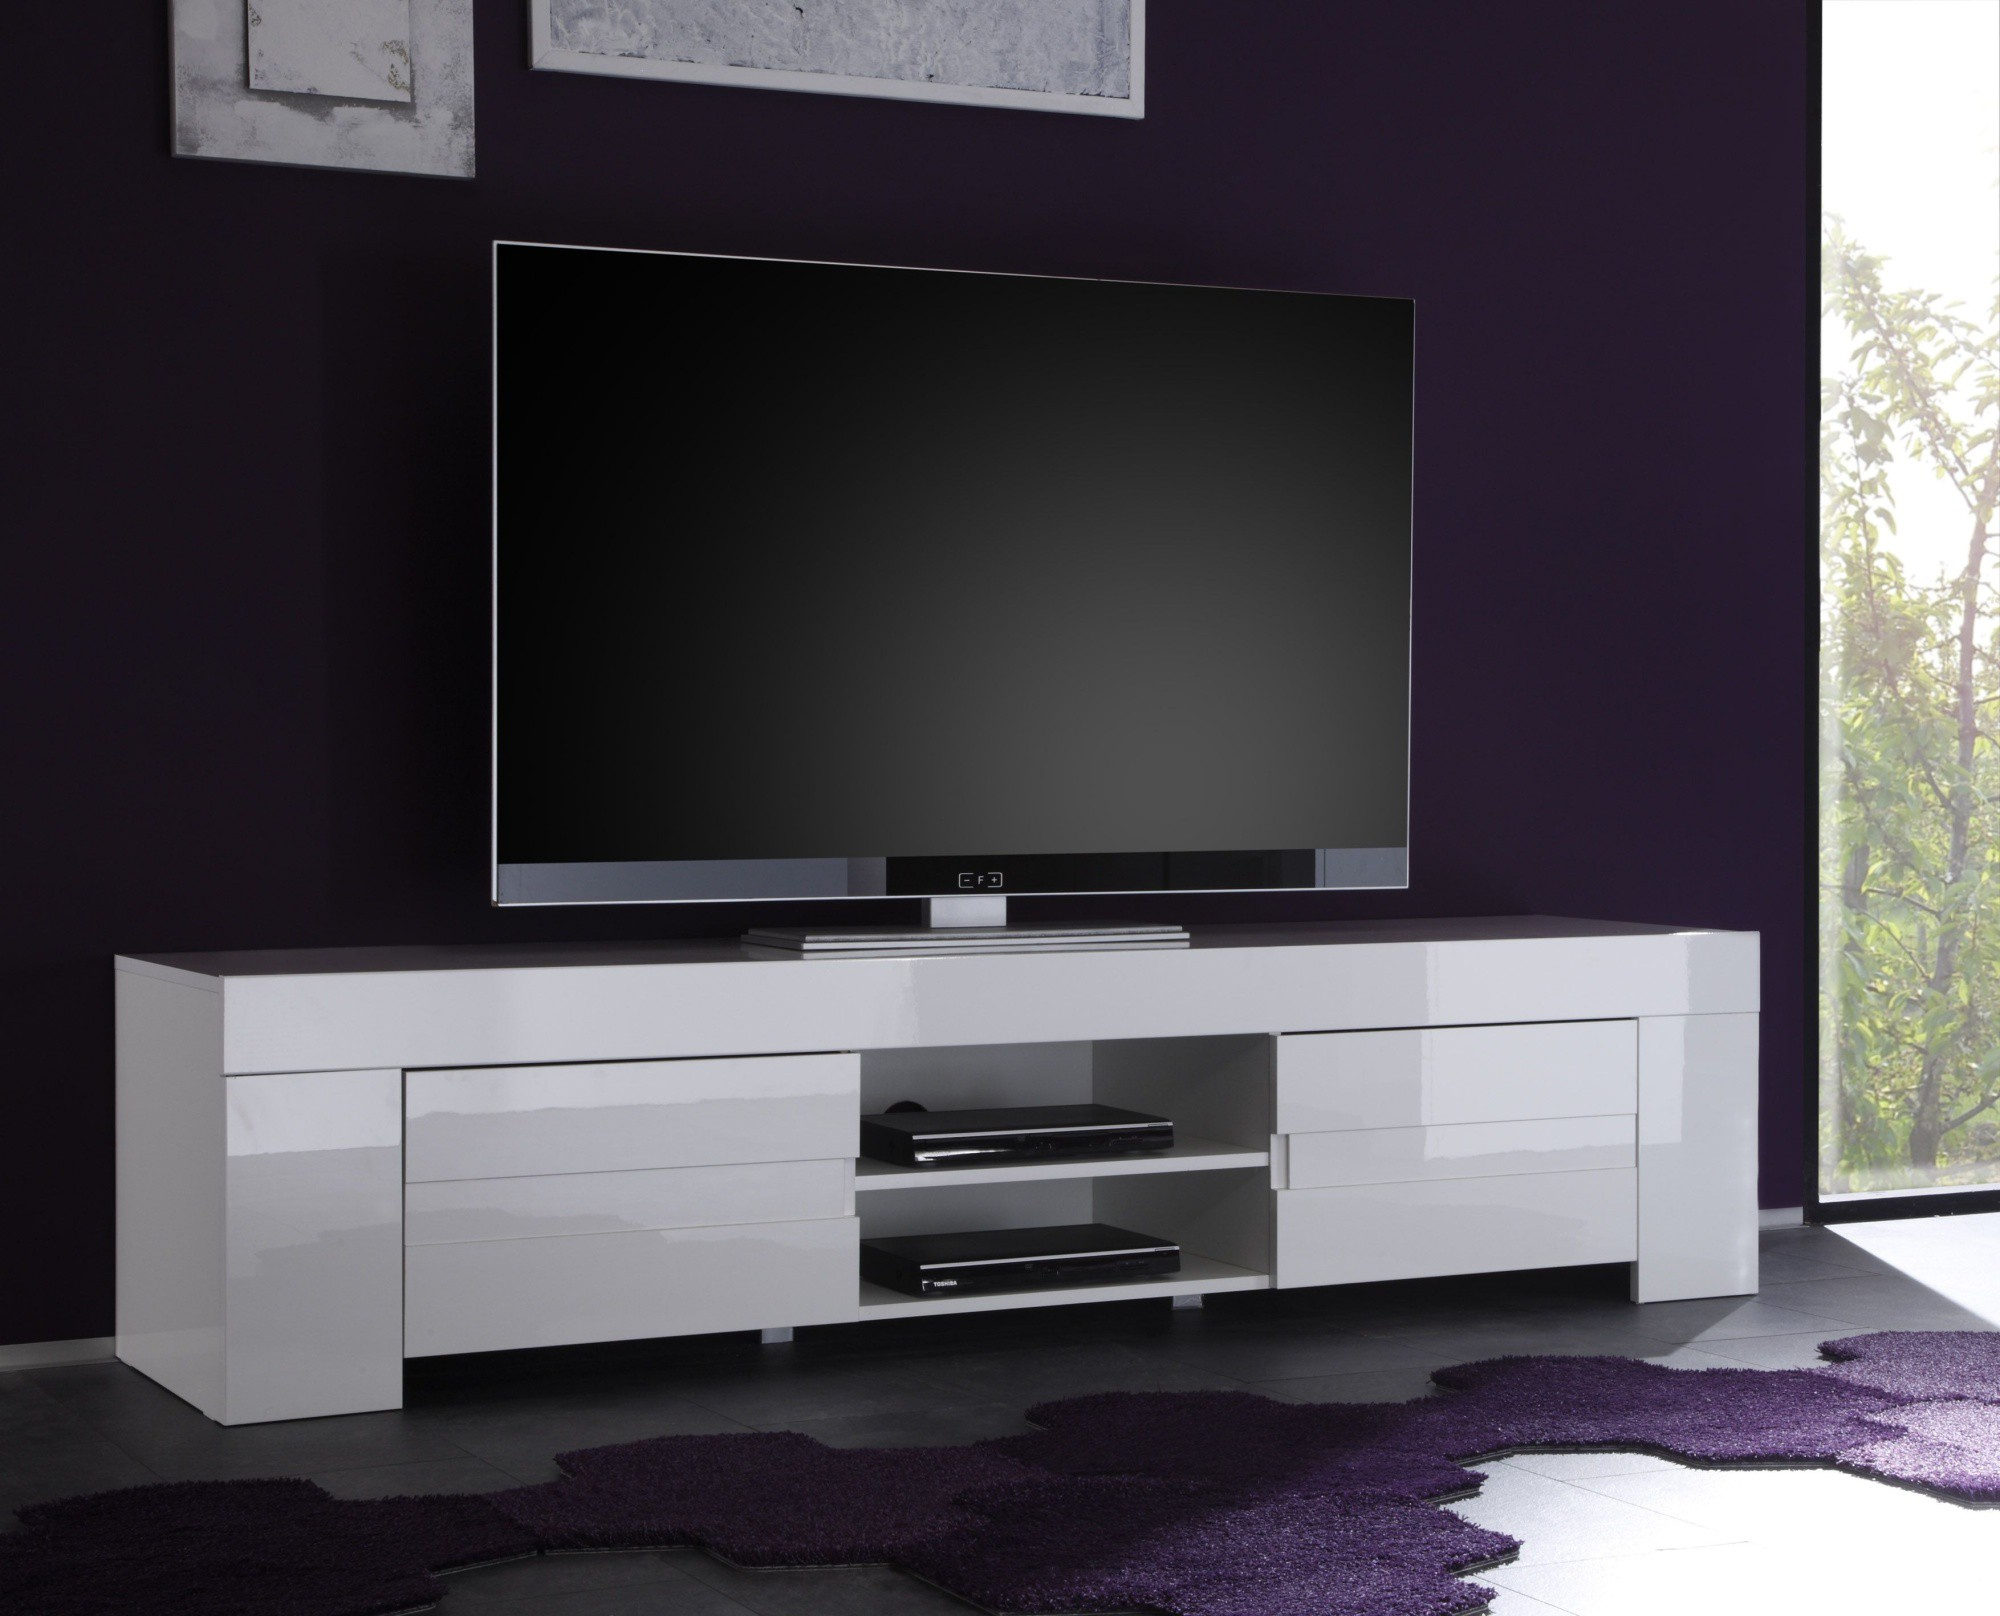 meuble tv simple pas cher id es de d coration int rieure french decor. Black Bedroom Furniture Sets. Home Design Ideas